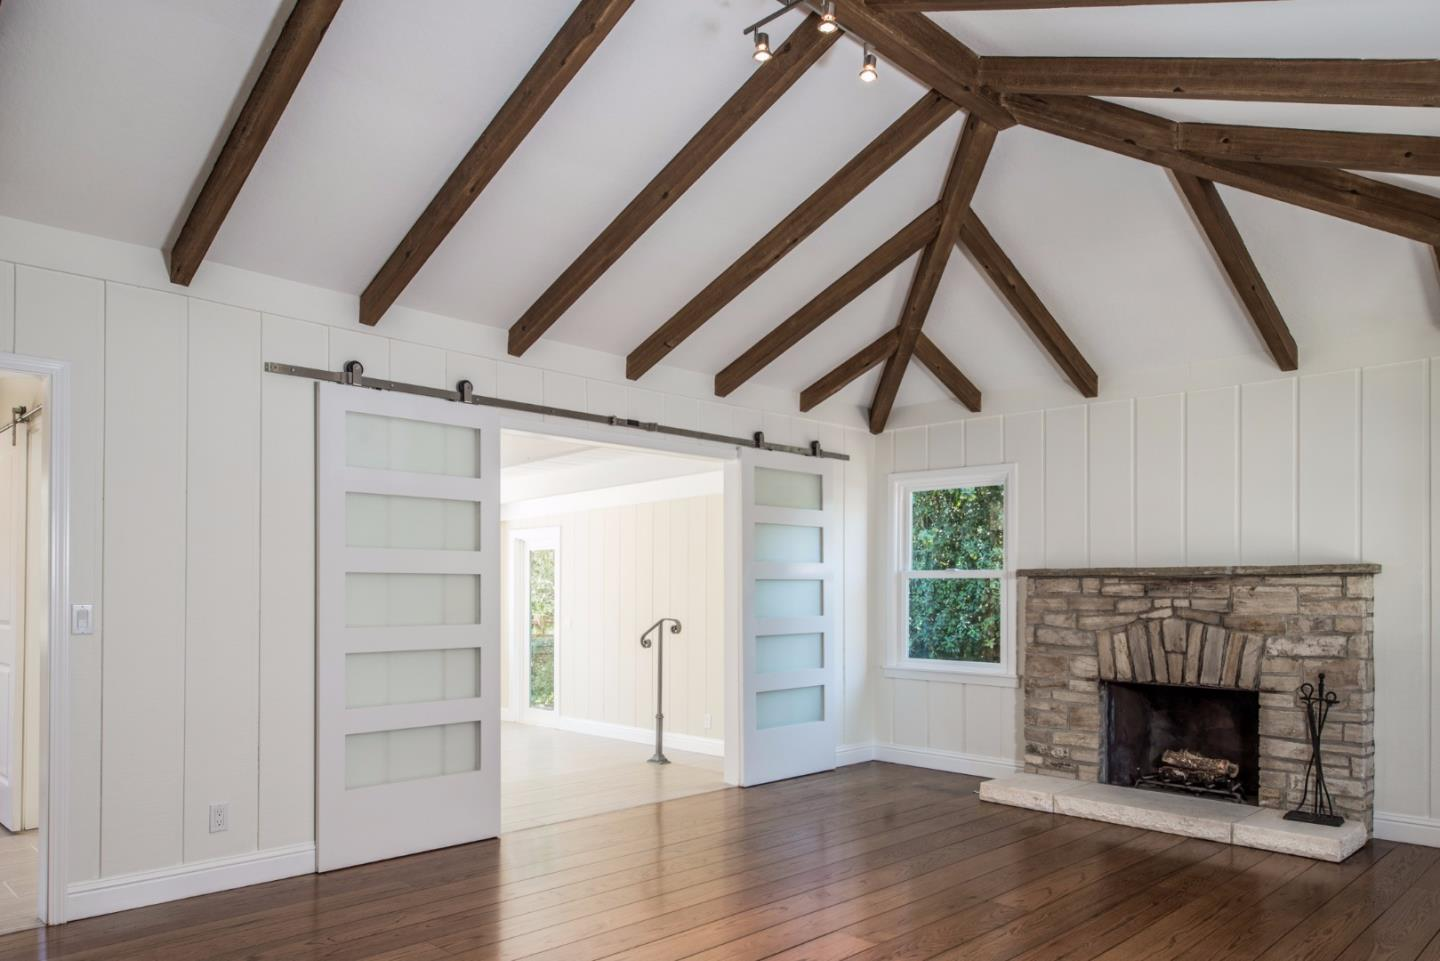 Additional photo for property listing at 3466 Trevis Way  Carmel, カリフォルニア 93923 アメリカ合衆国